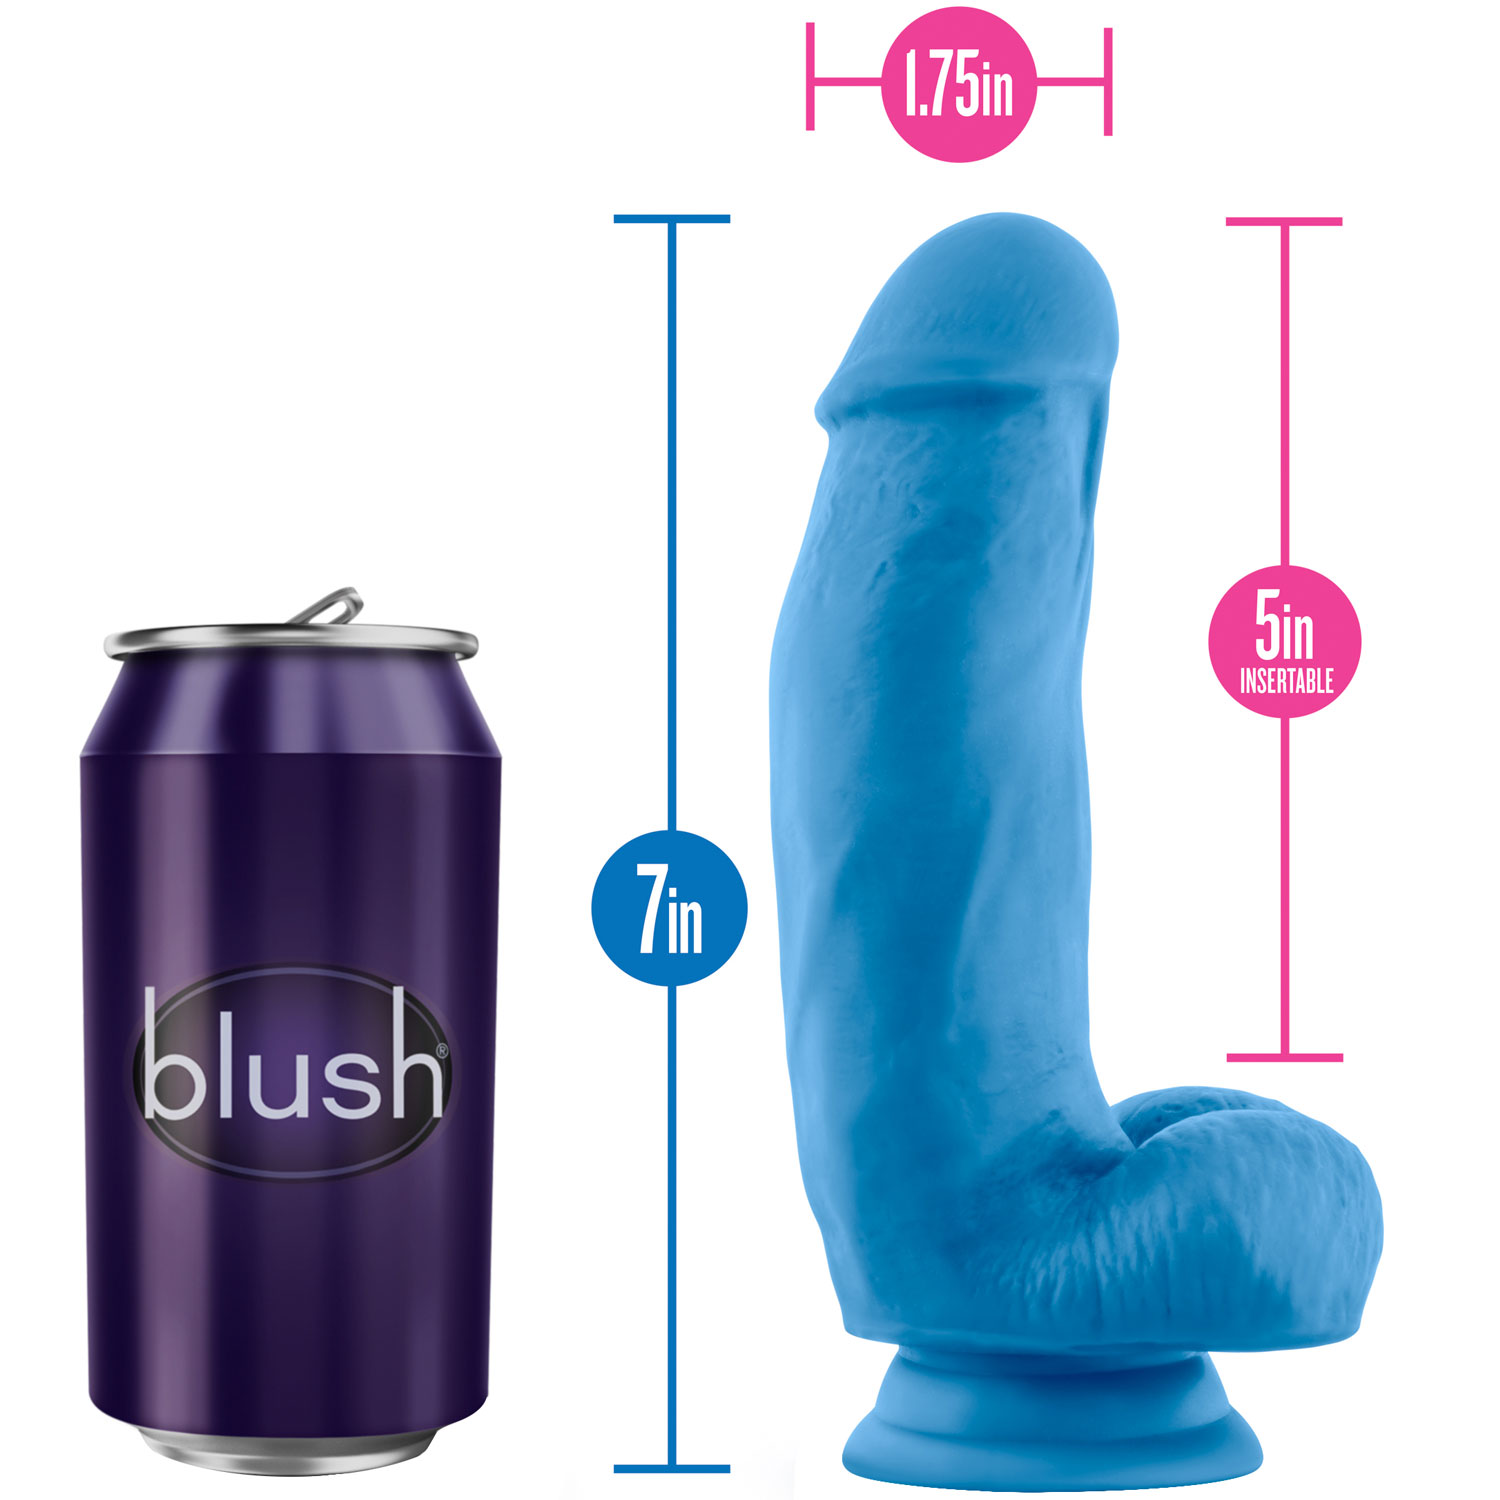 Neo Elite 7 Inch Dual Density Realistic Silicone Dildo With Balls by Blush - Measurements